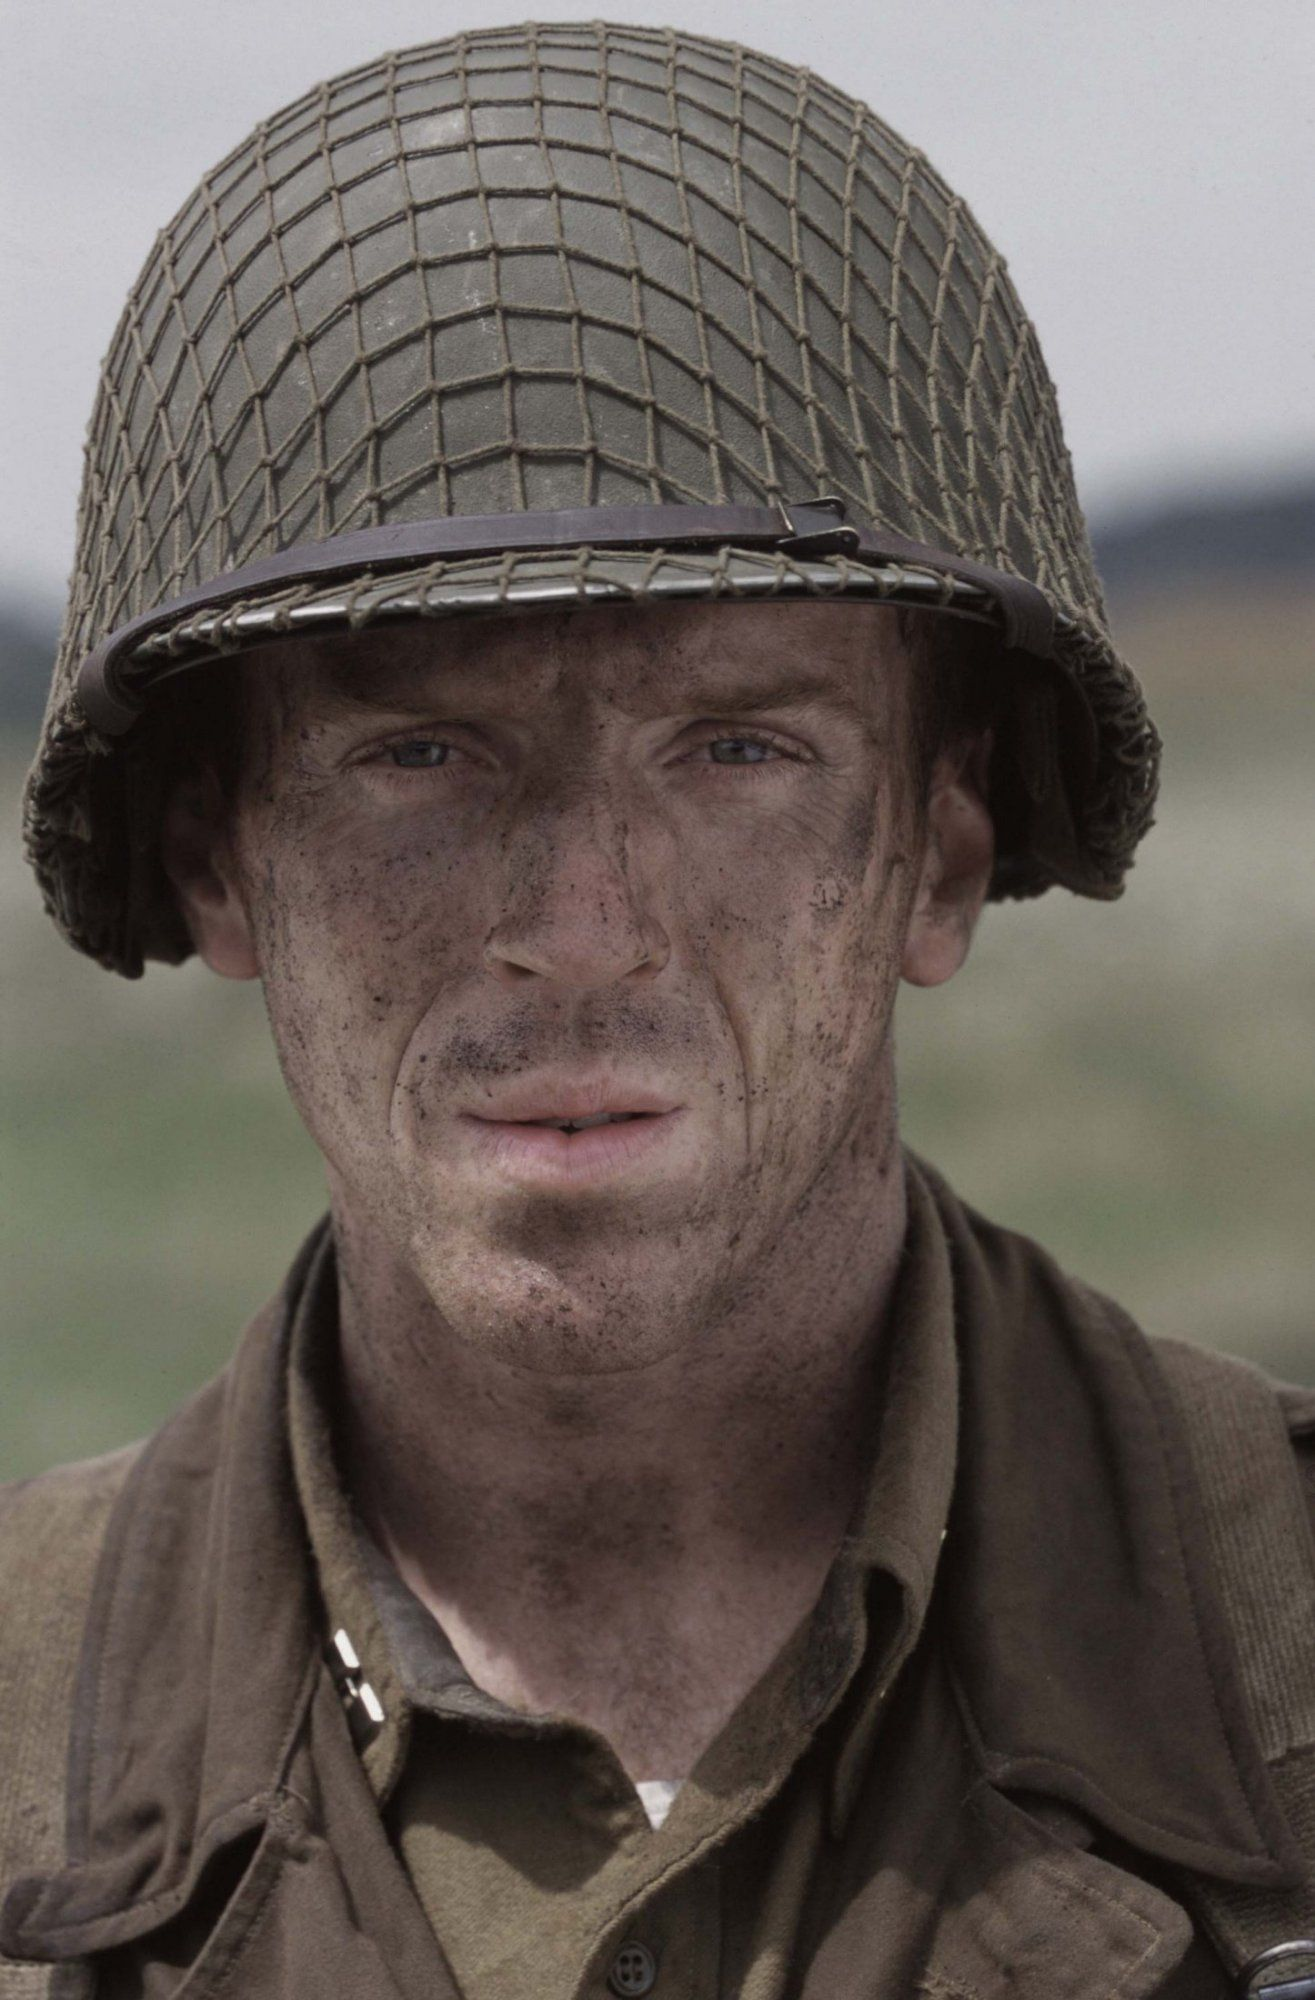 Band of Brothers - Still